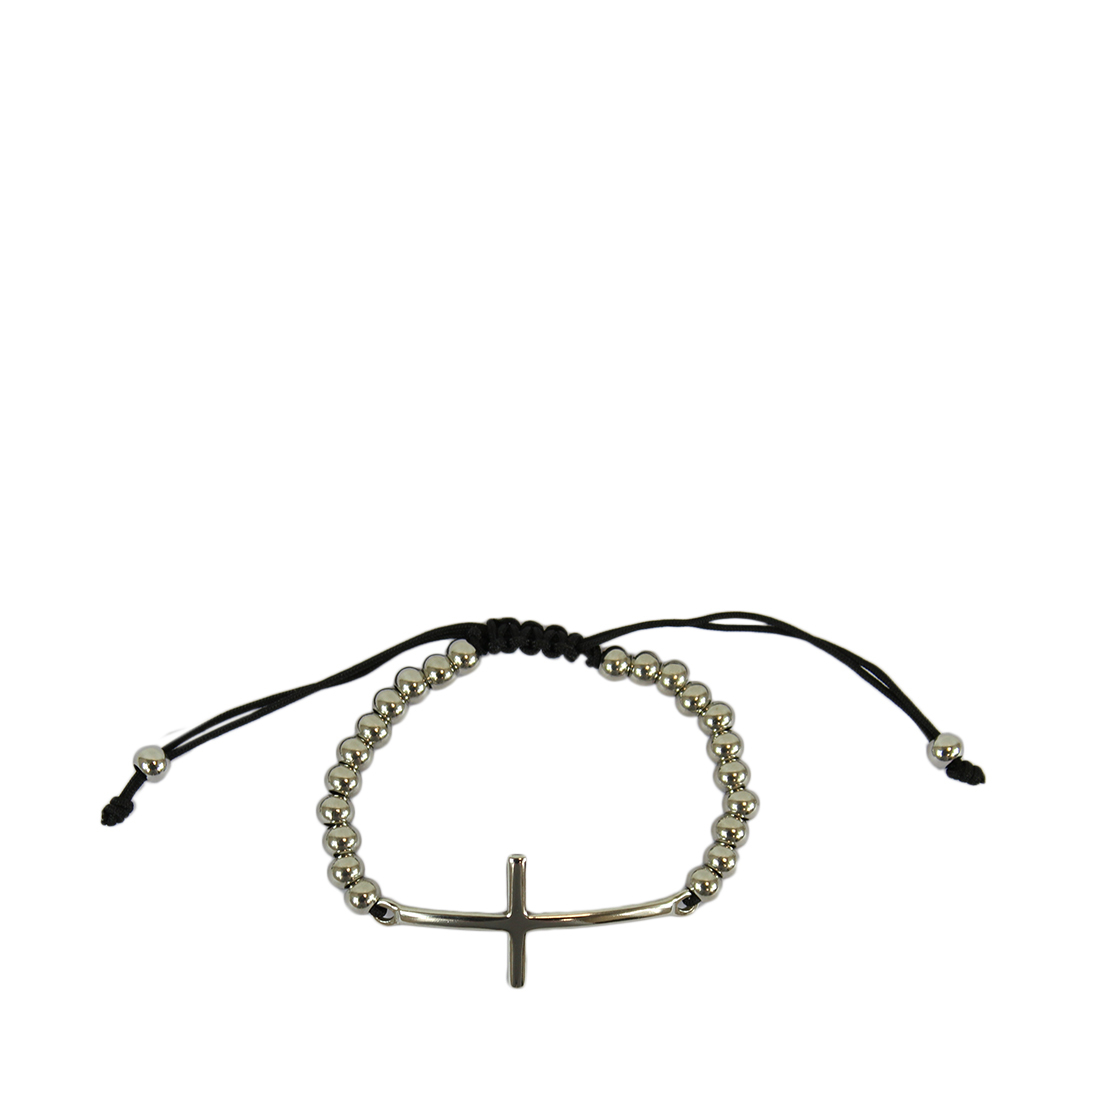 Pearl bracelet with a big cross on front